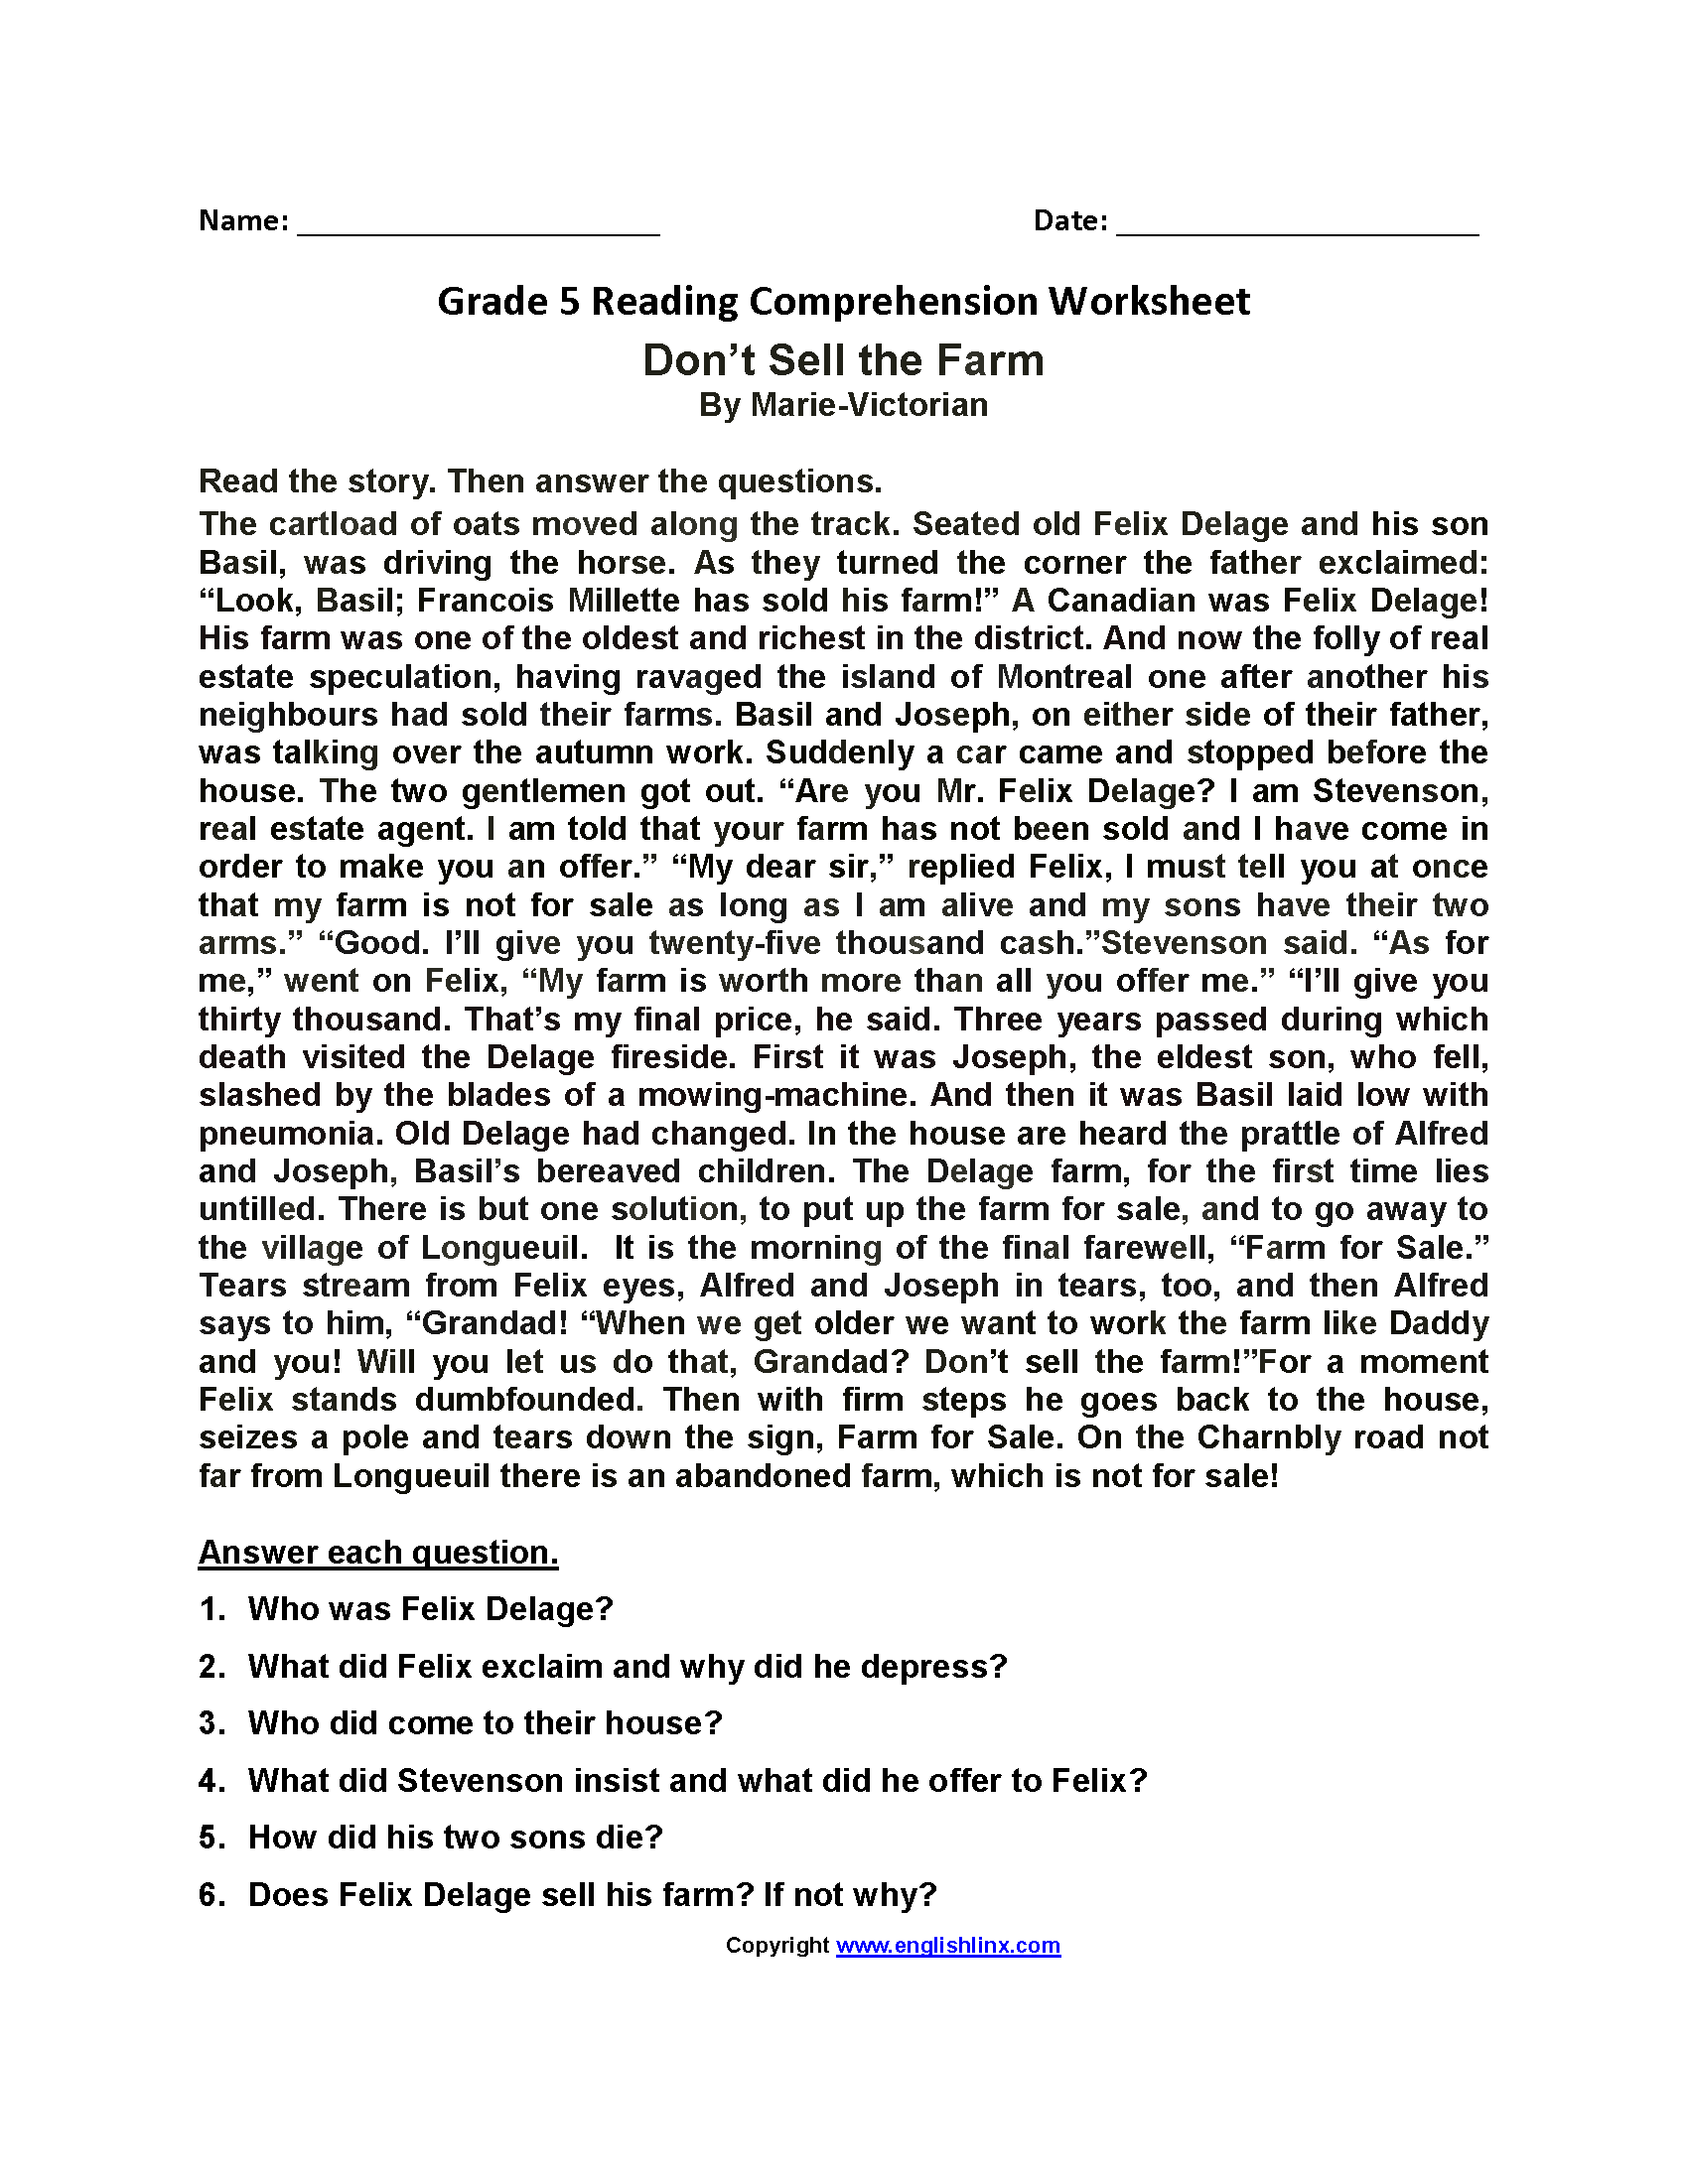 Don't Sell the Farm Fifth Grade Reading Worksheets   Comprehension  worksheets [ 2200 x 1700 Pixel ]